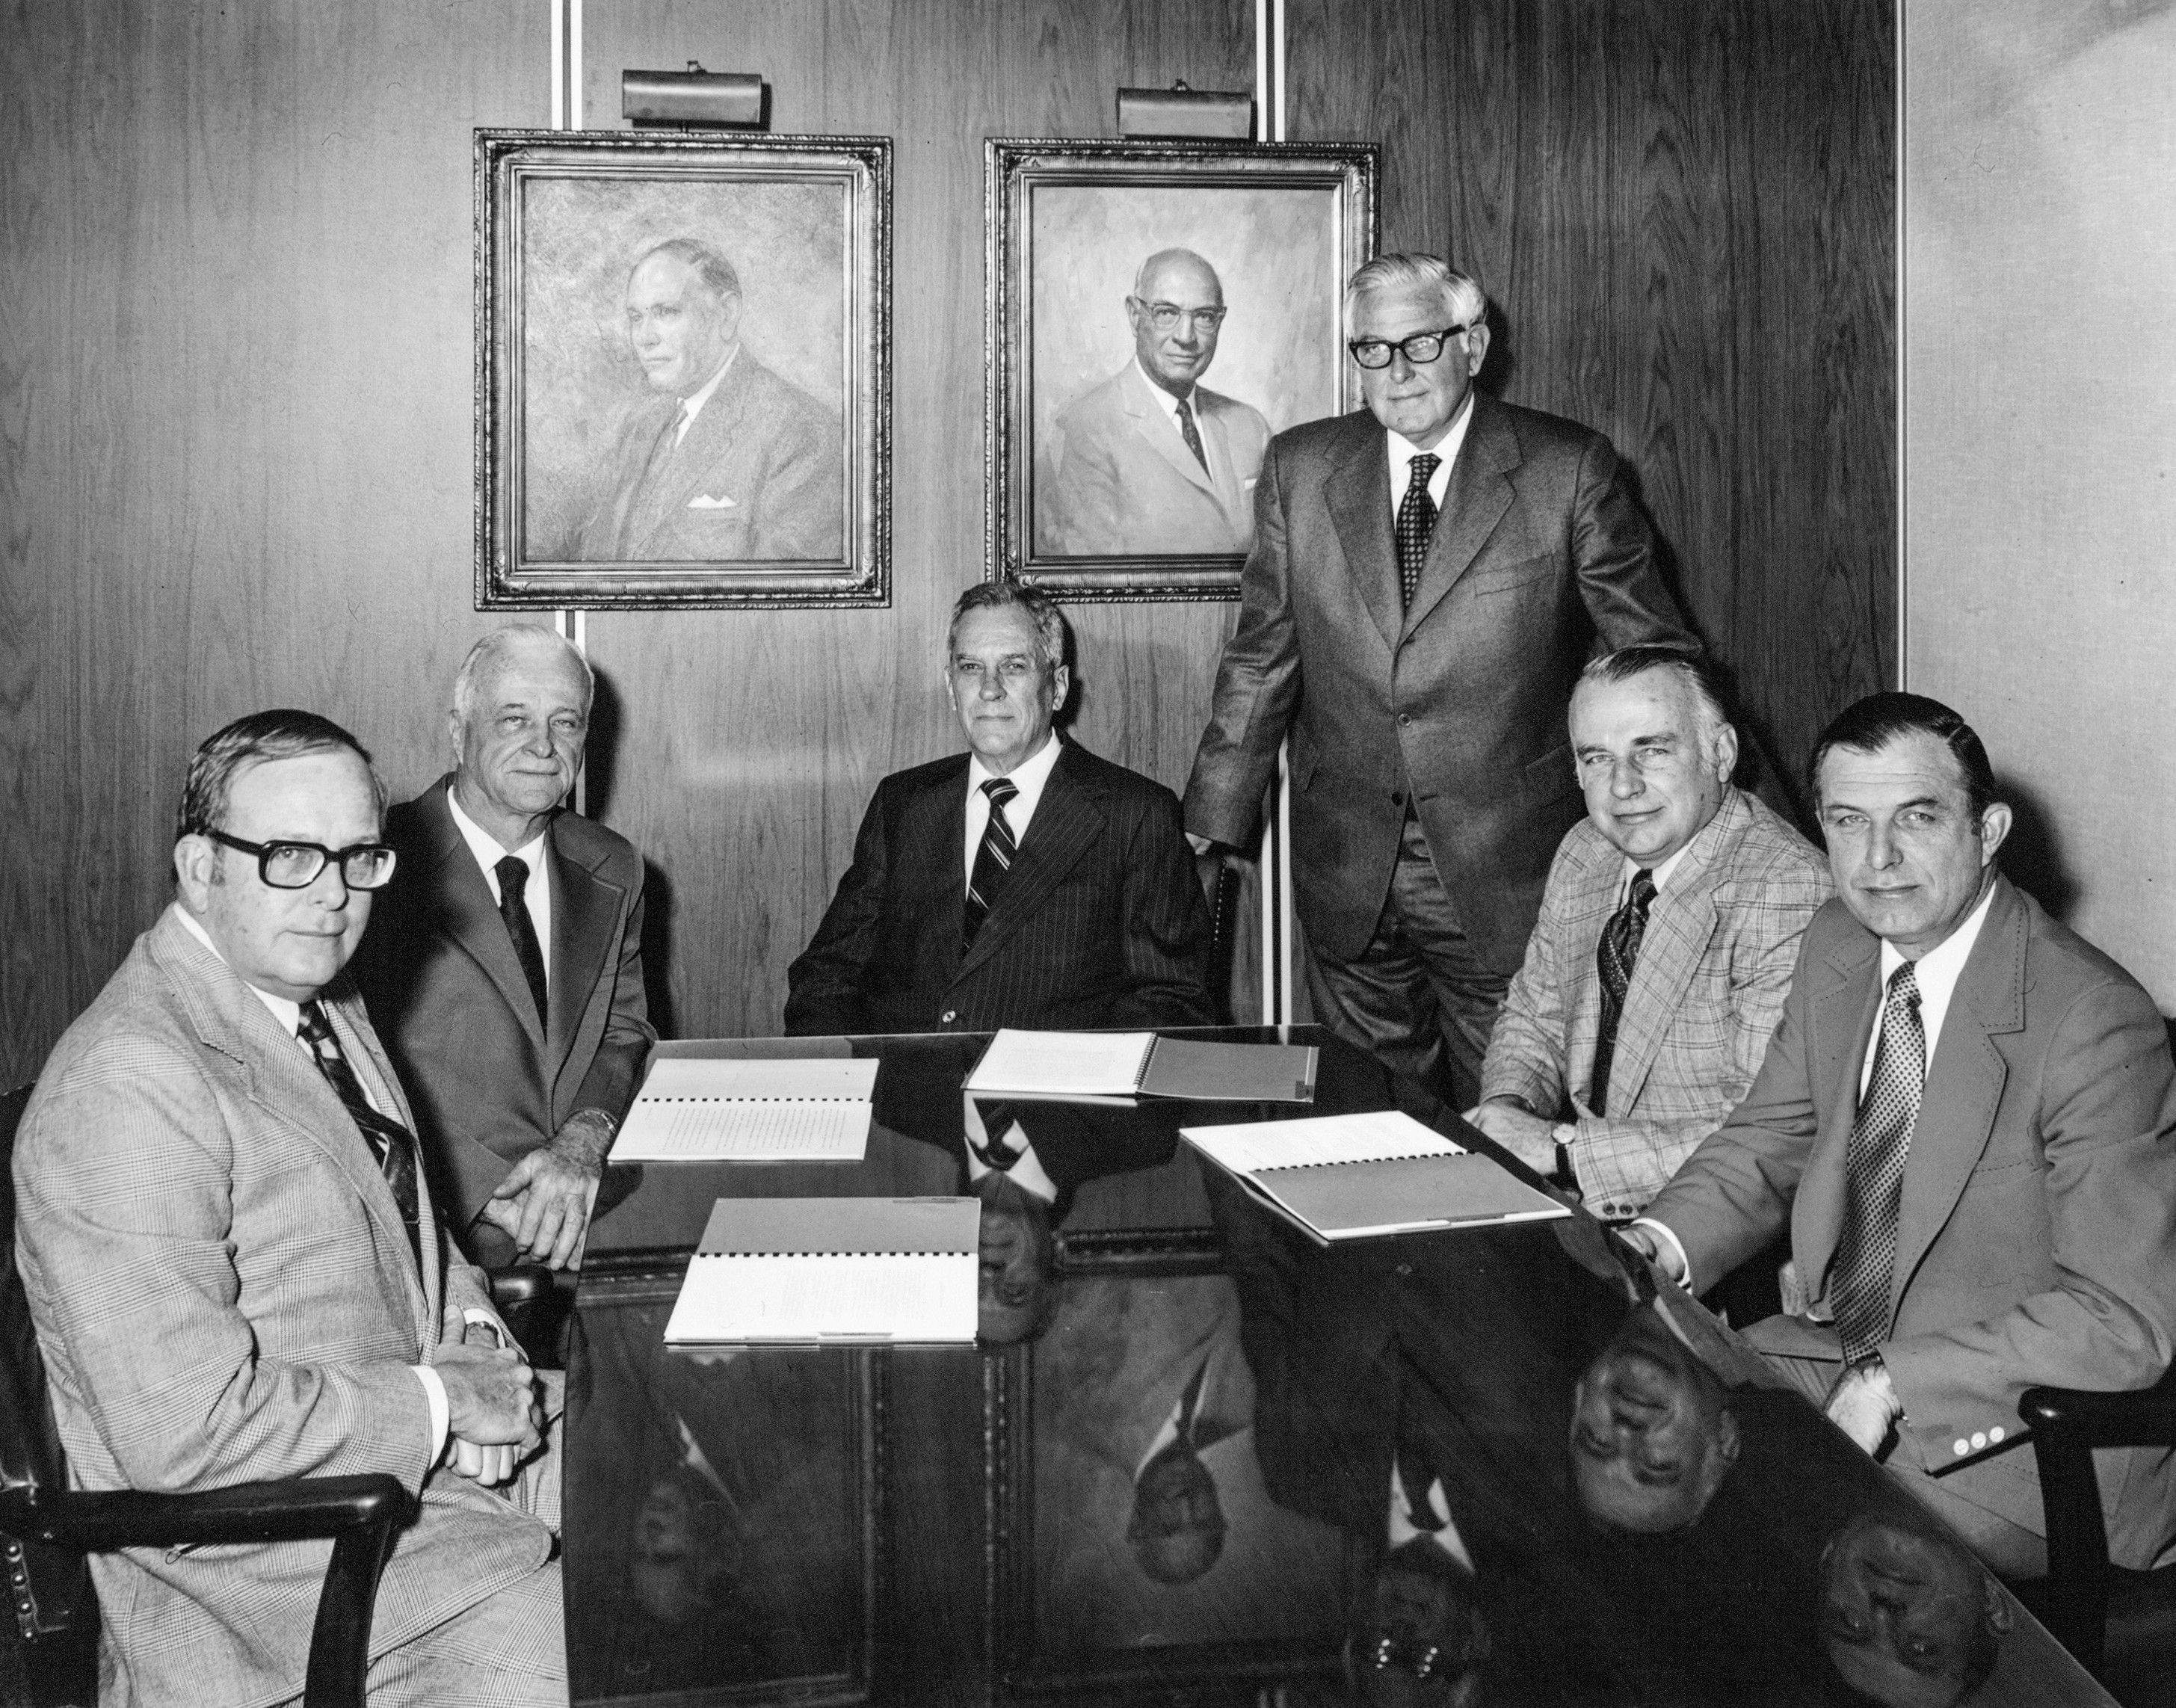 Upon Veatch's retirement, Tom Robinson (standing) became